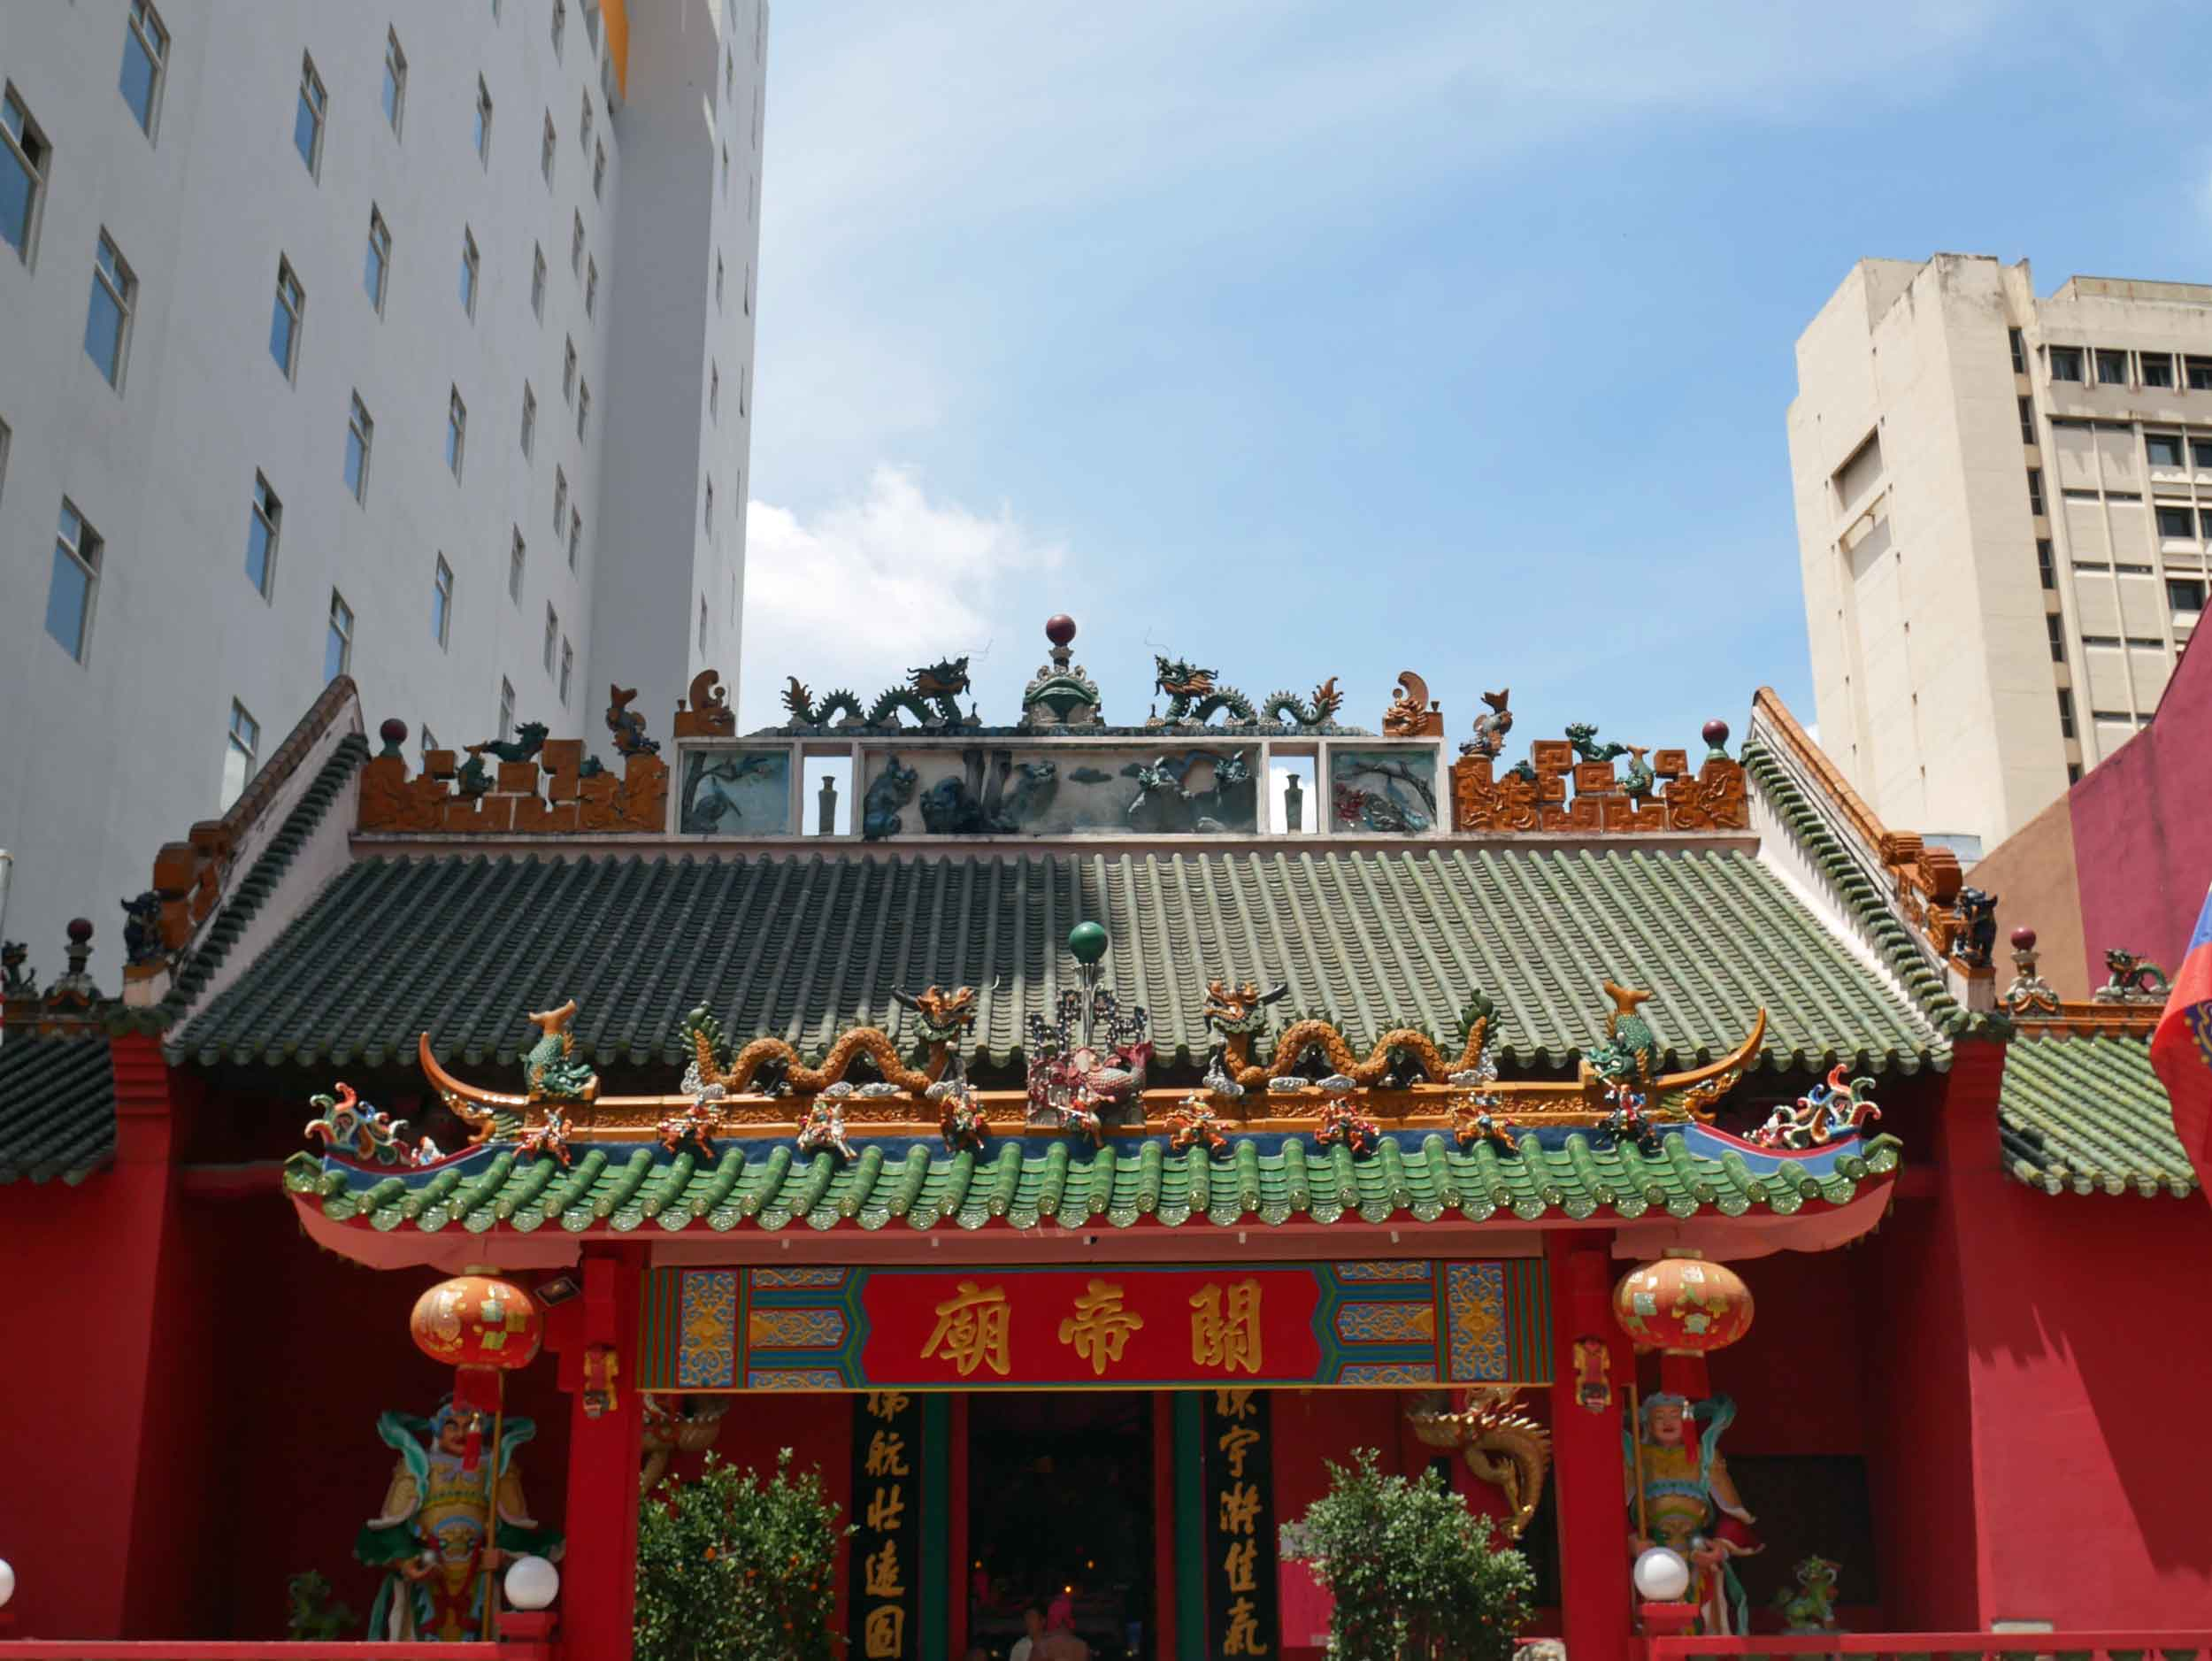 Guan Di Taoist Temple houses a 59kg copper Chinese pole weapon, thought to protect any person who can lift it.